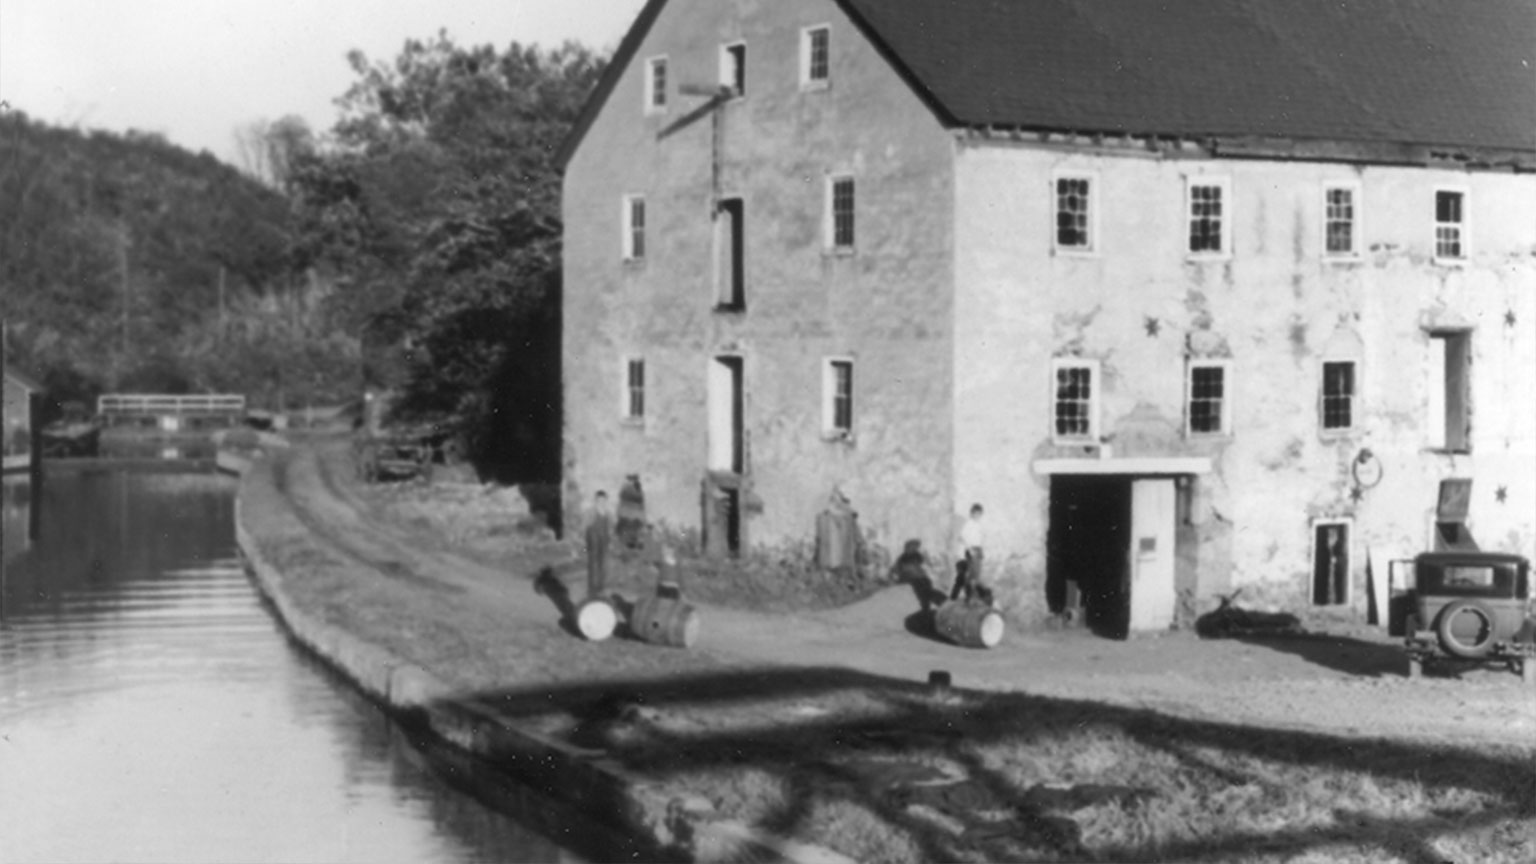 This mill no longer stands, but if you visit the tow path that runs by lock 44 you can still find some of its foundation poking up from the ground.